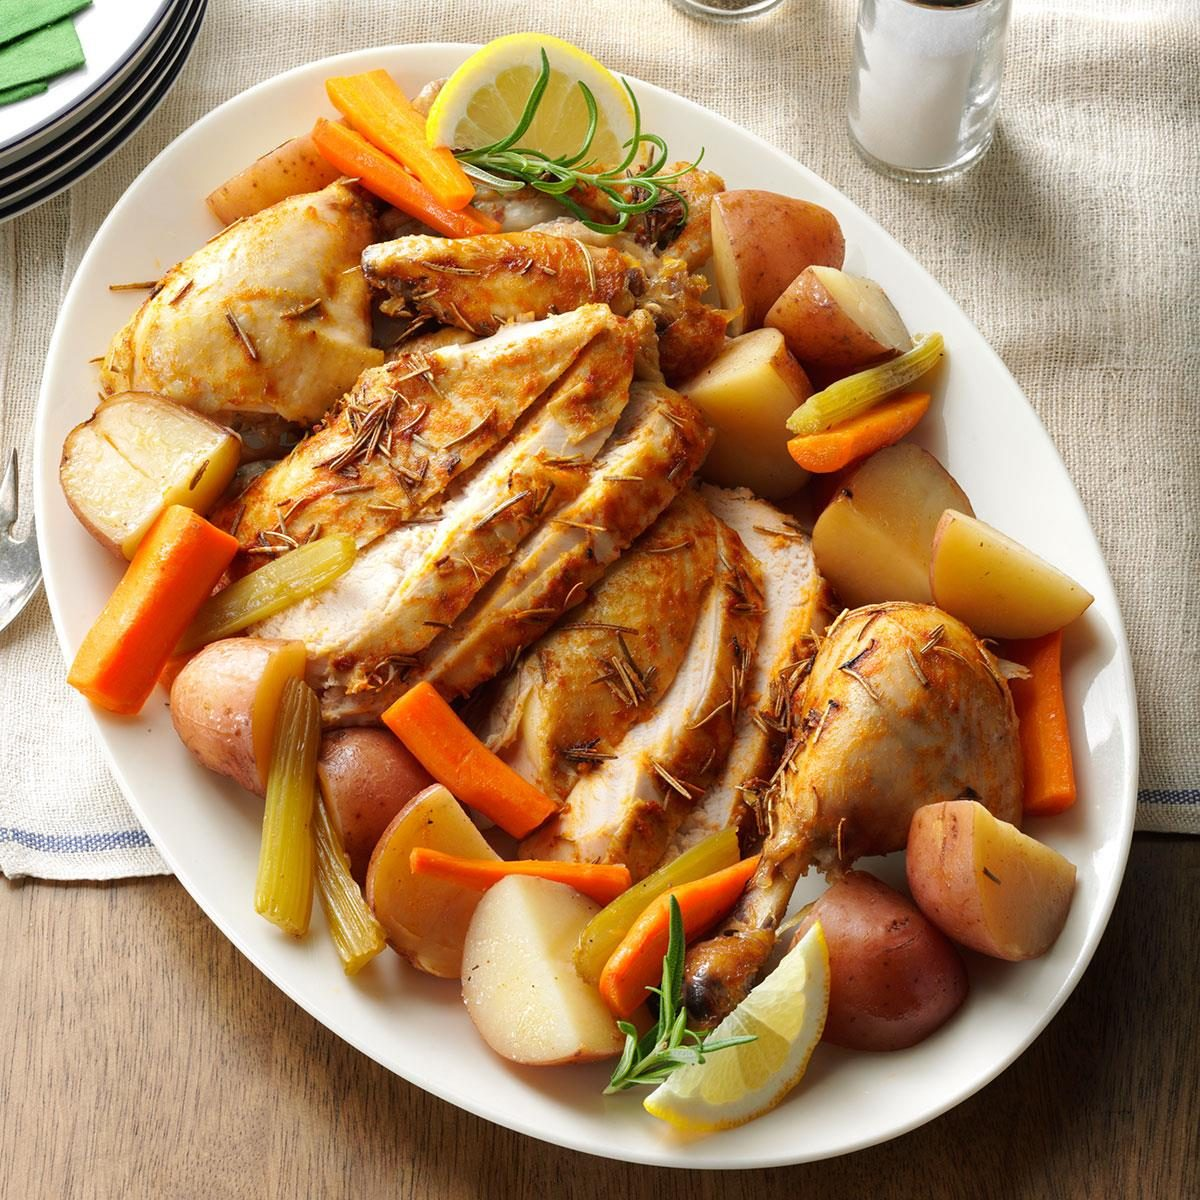 Day 20: Slow-Roasted Chicken with Vegetables